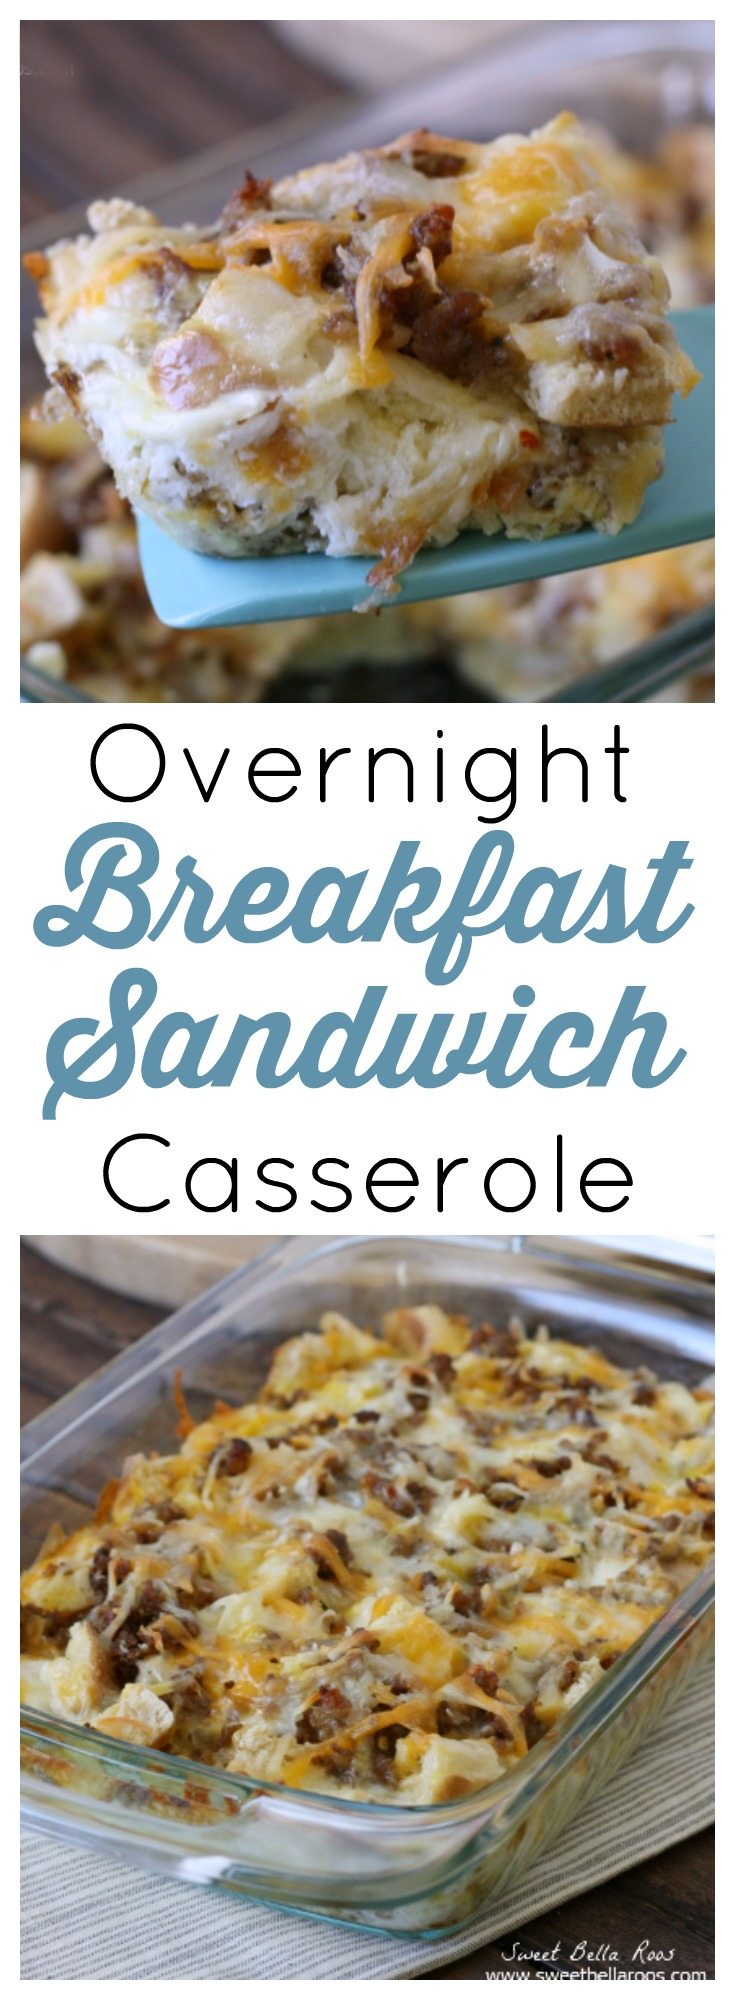 All the yummy ingredients of a sausage breakfast sandwich but even easier to make. Love to make this and top with salsa- so good!